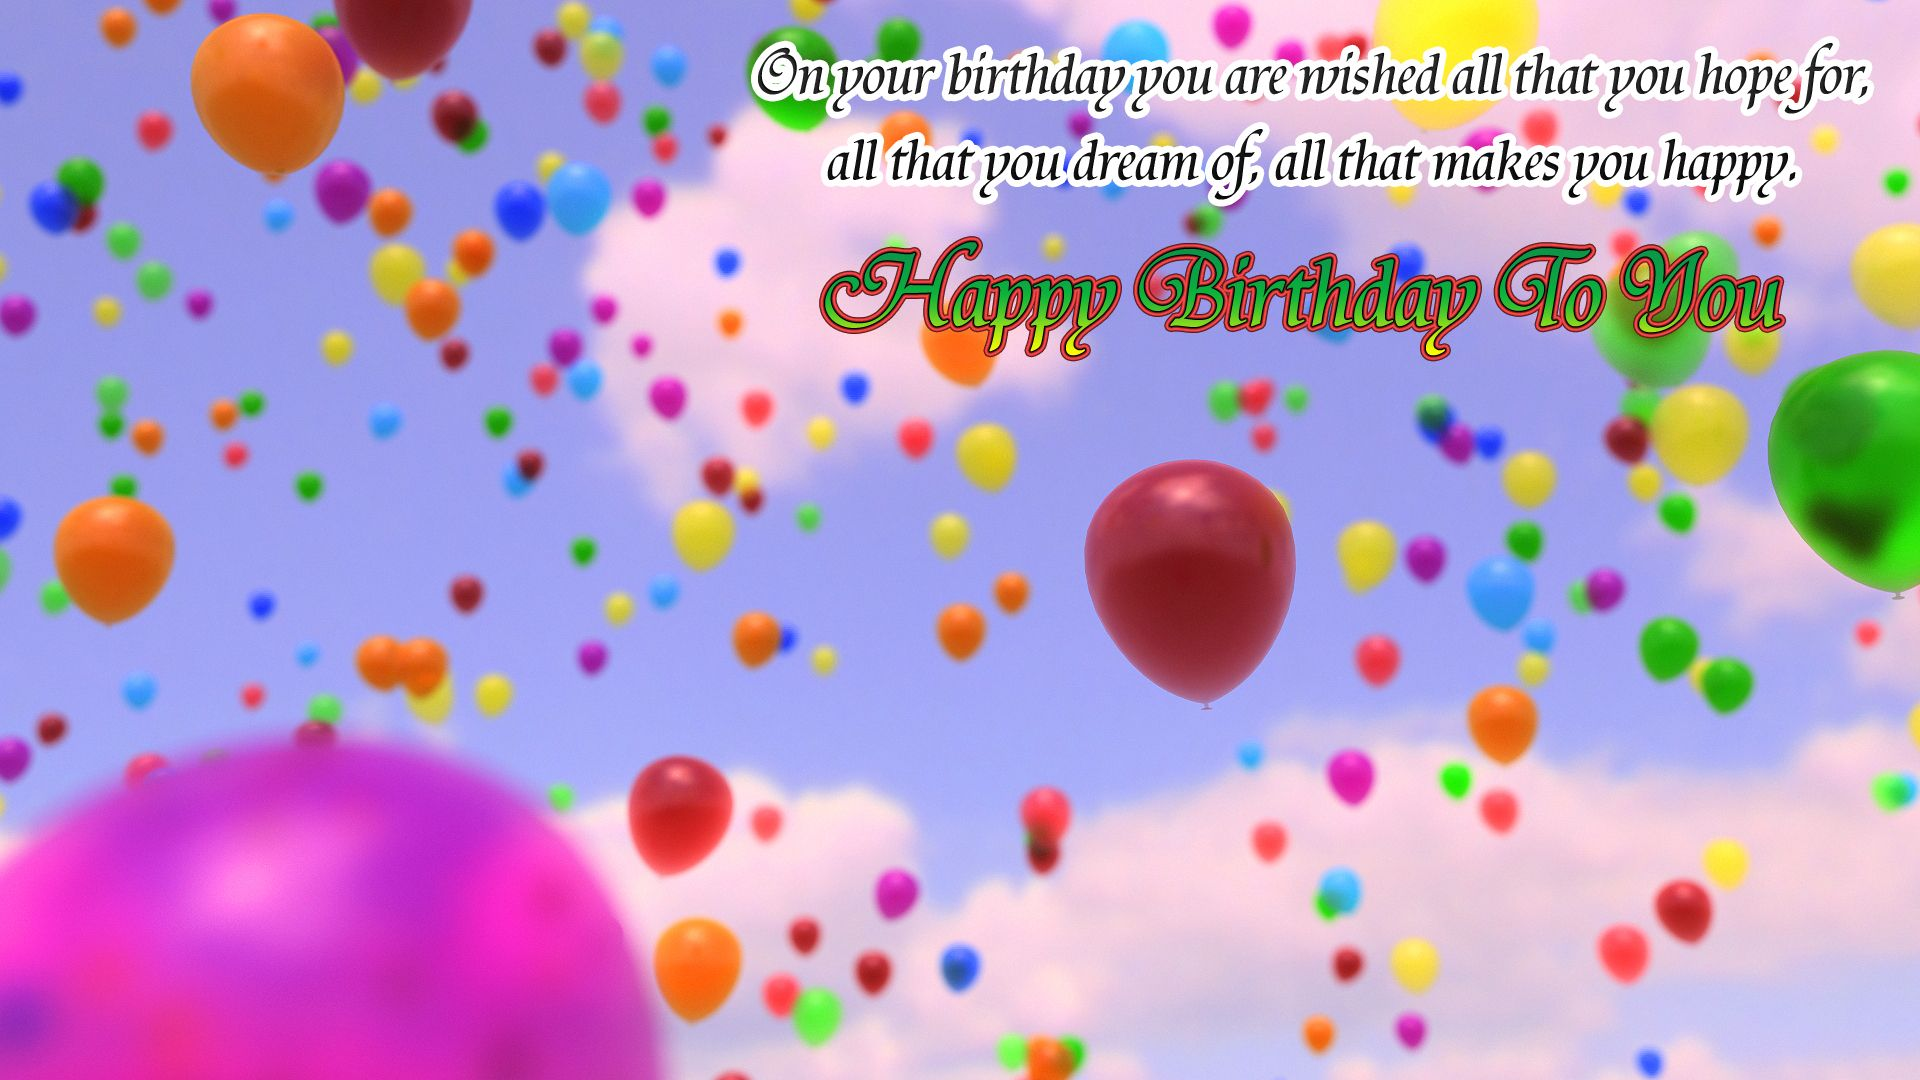 Birthday to someone in heaven amusing and witty birthday quotes birthday images kristyandbryce Gallery